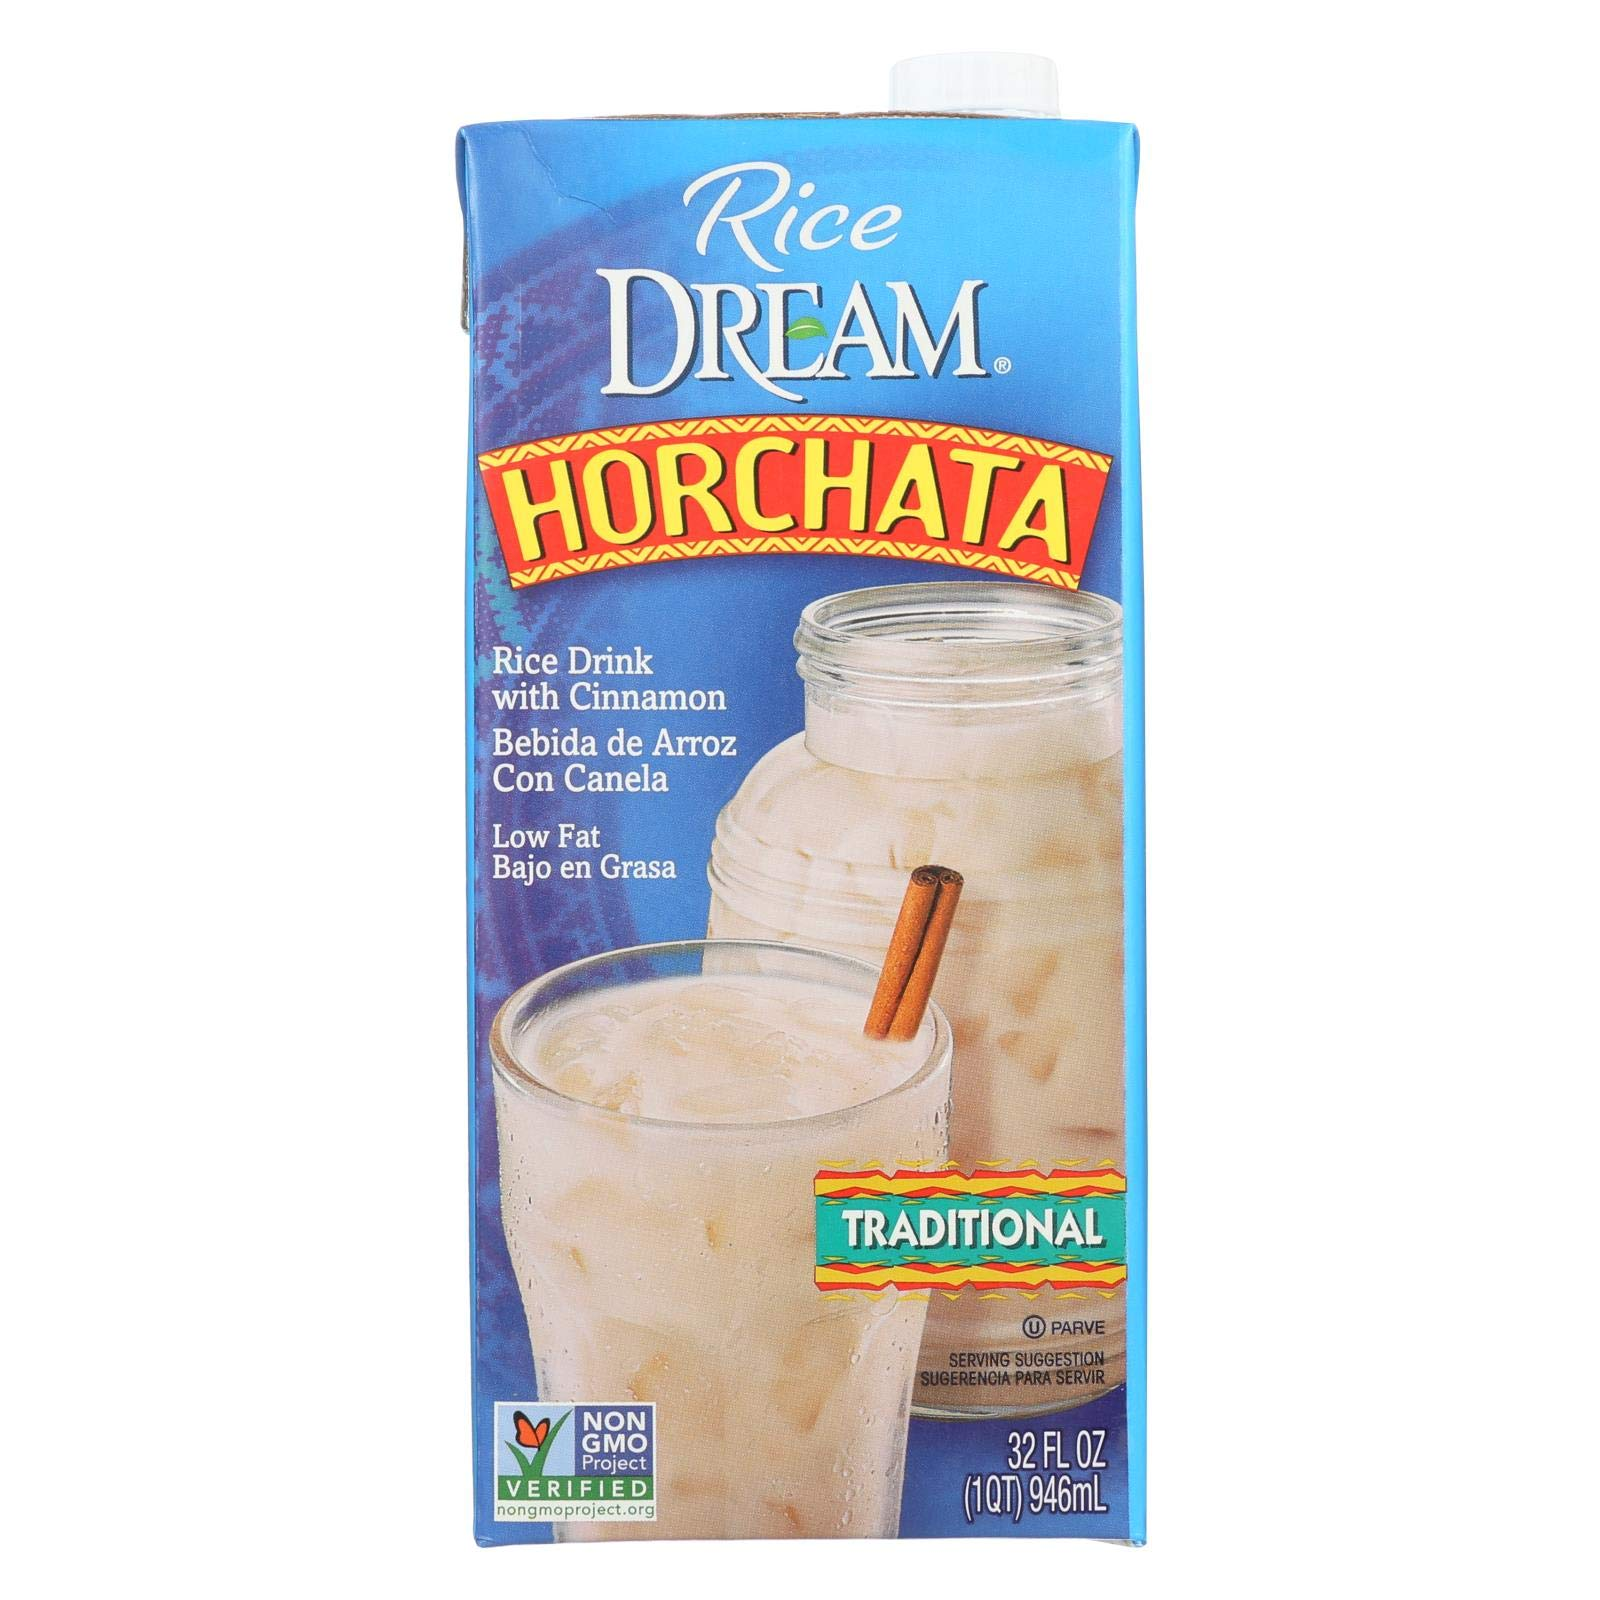 Imagine Foods Rice Dream Traditional Rice Drink - Horchata - Case of 6 - 32 Fl oz. by Imagine Foods